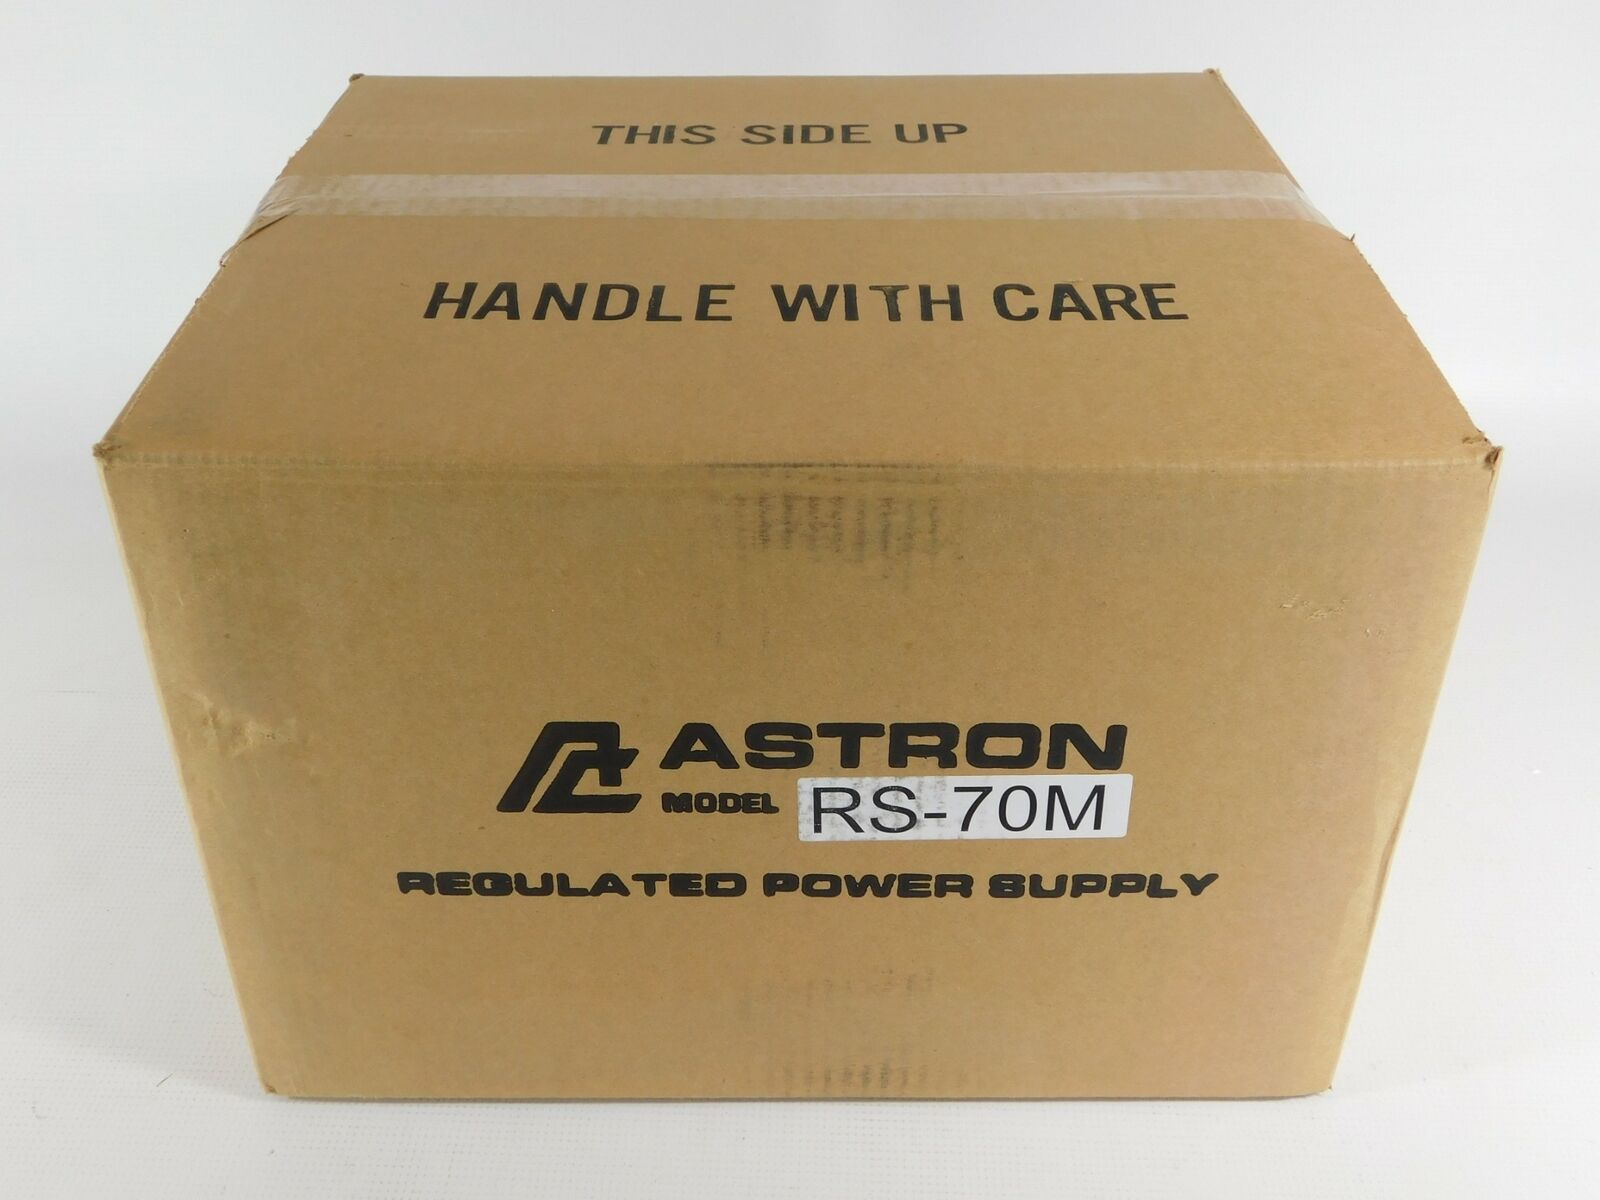 Astron RS-70M Ham Radio 70 Amp Metered Power Supply (new in factory sealed box). Buy it now for 420.00